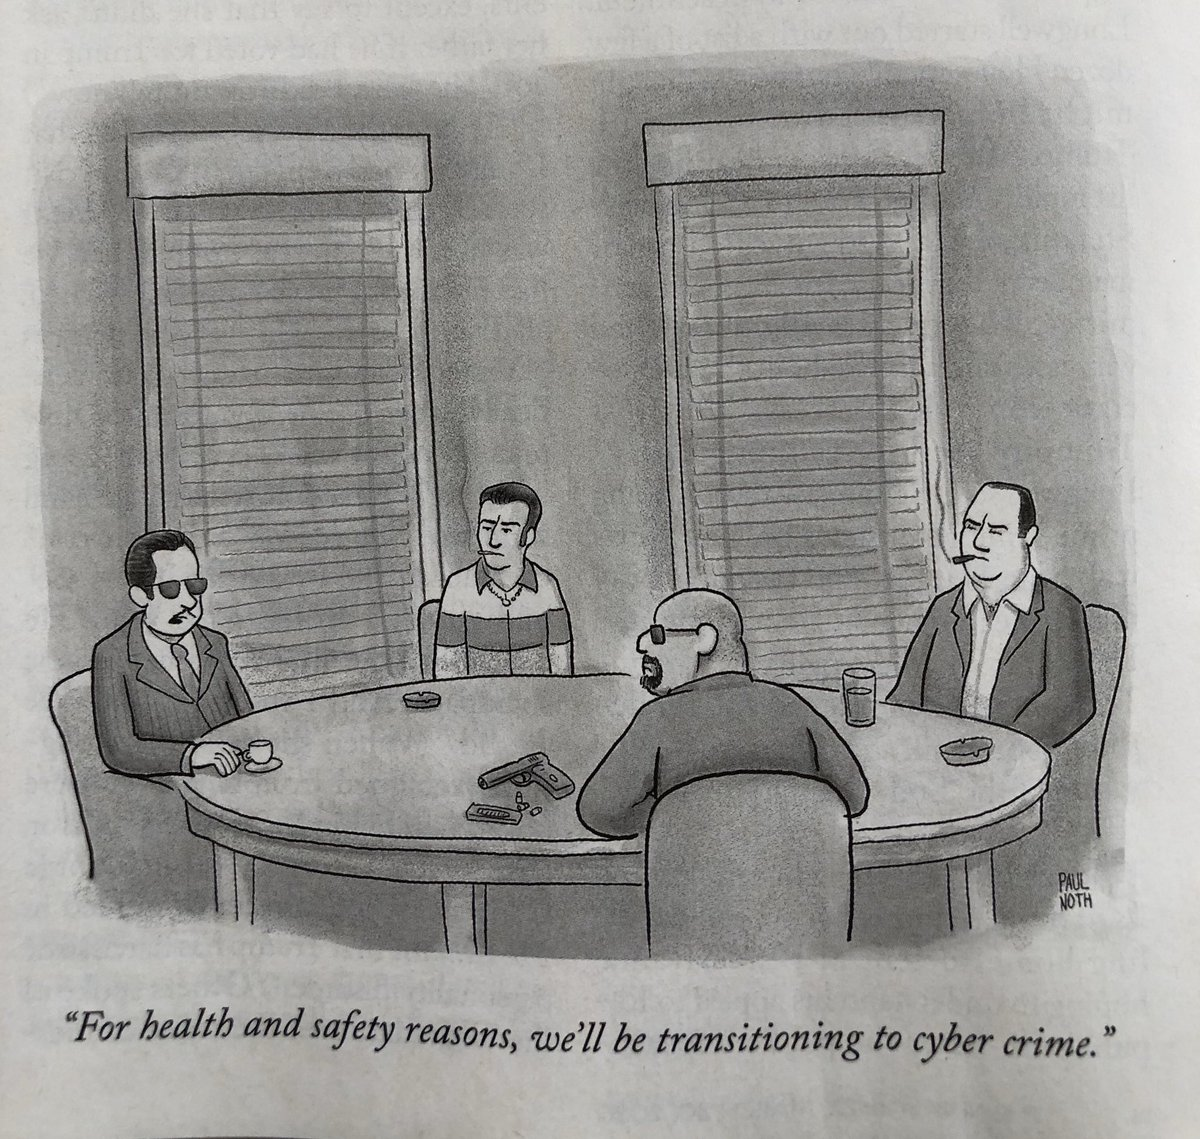 From the @NewYorker that just landed on our doorstep